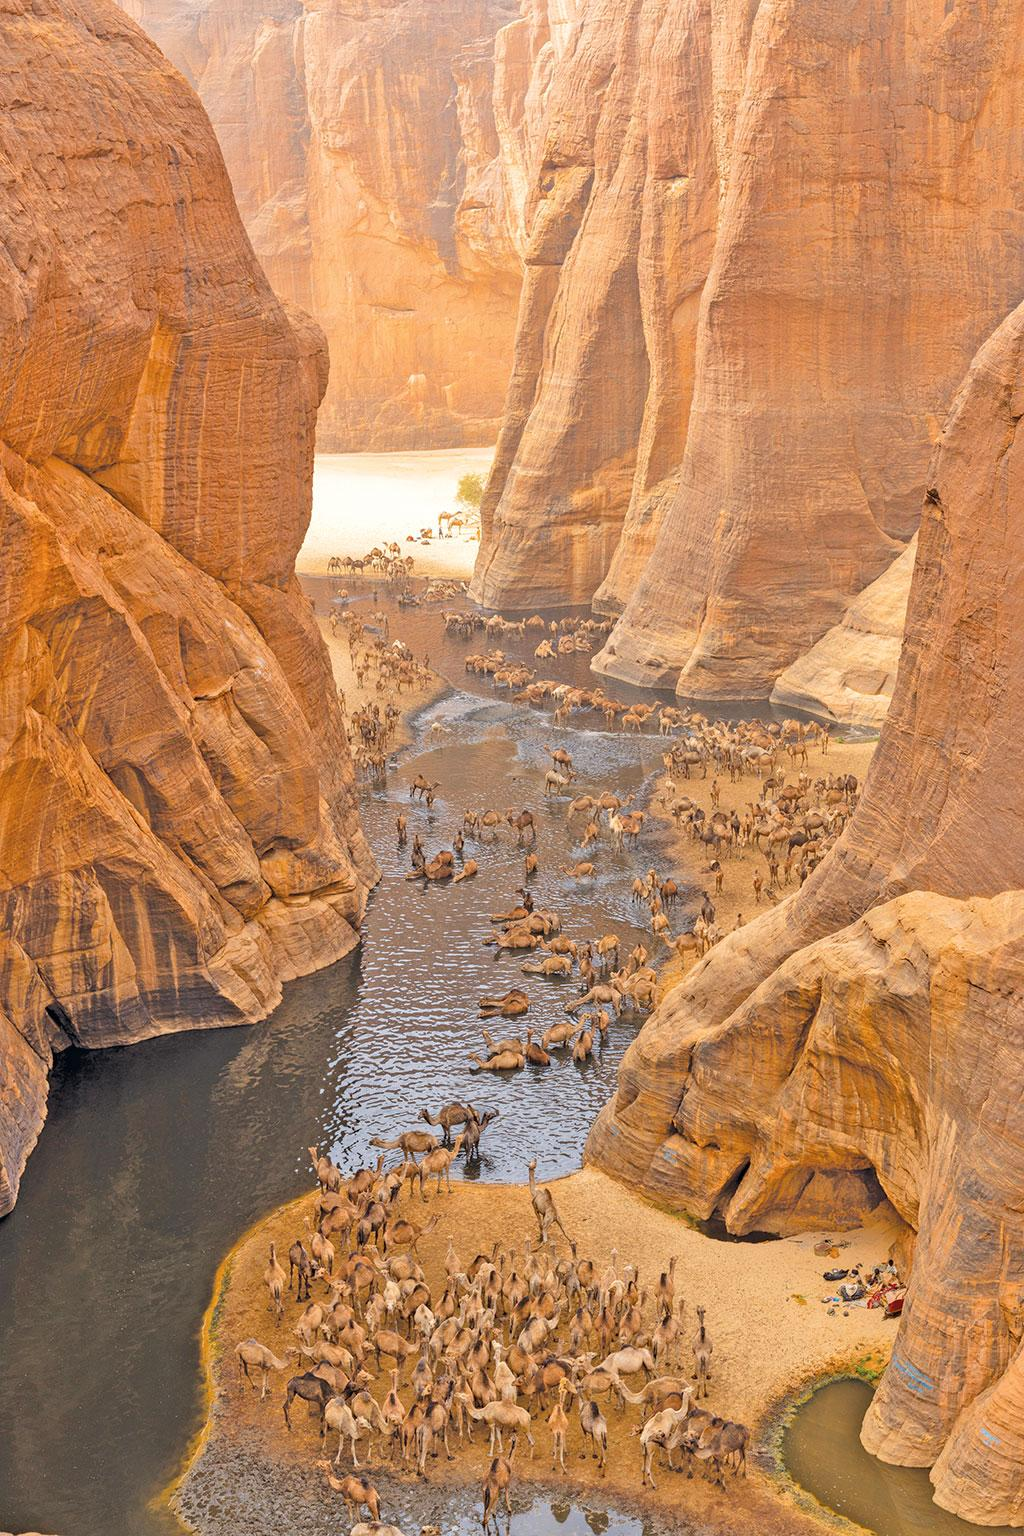 Guelta d'Archei in the Sahara desert, Africa. Gueltas are  freshwater pools formed due to seepage of underground water